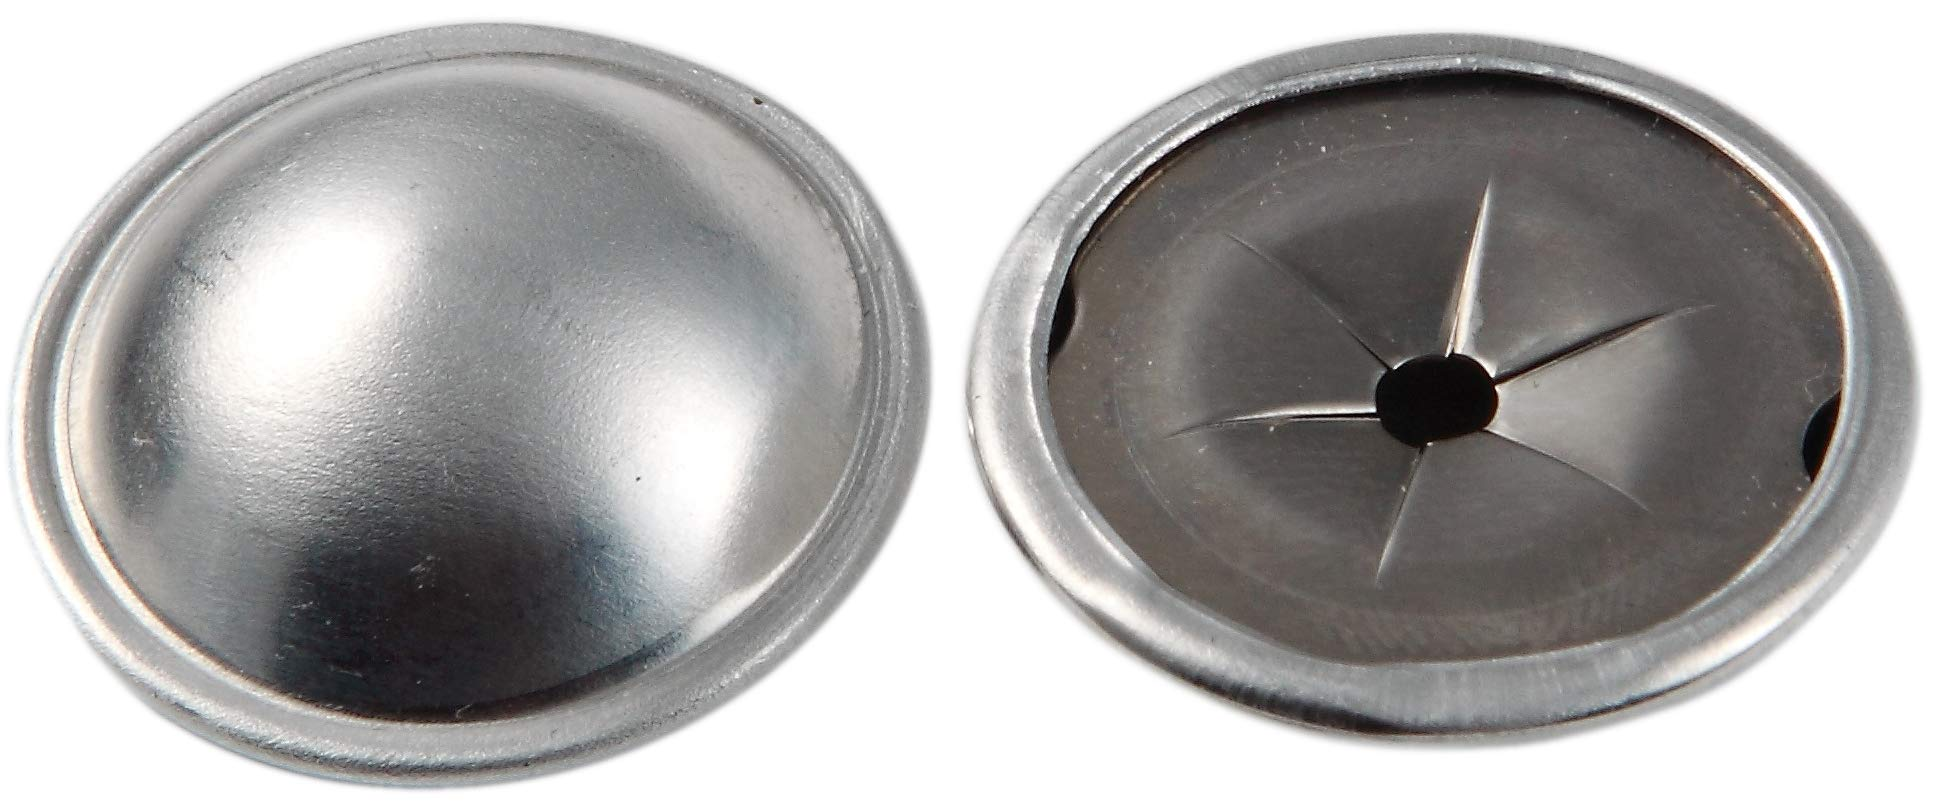 Insulation Dome Cap Washers (100, Aluminum) by BRB Products